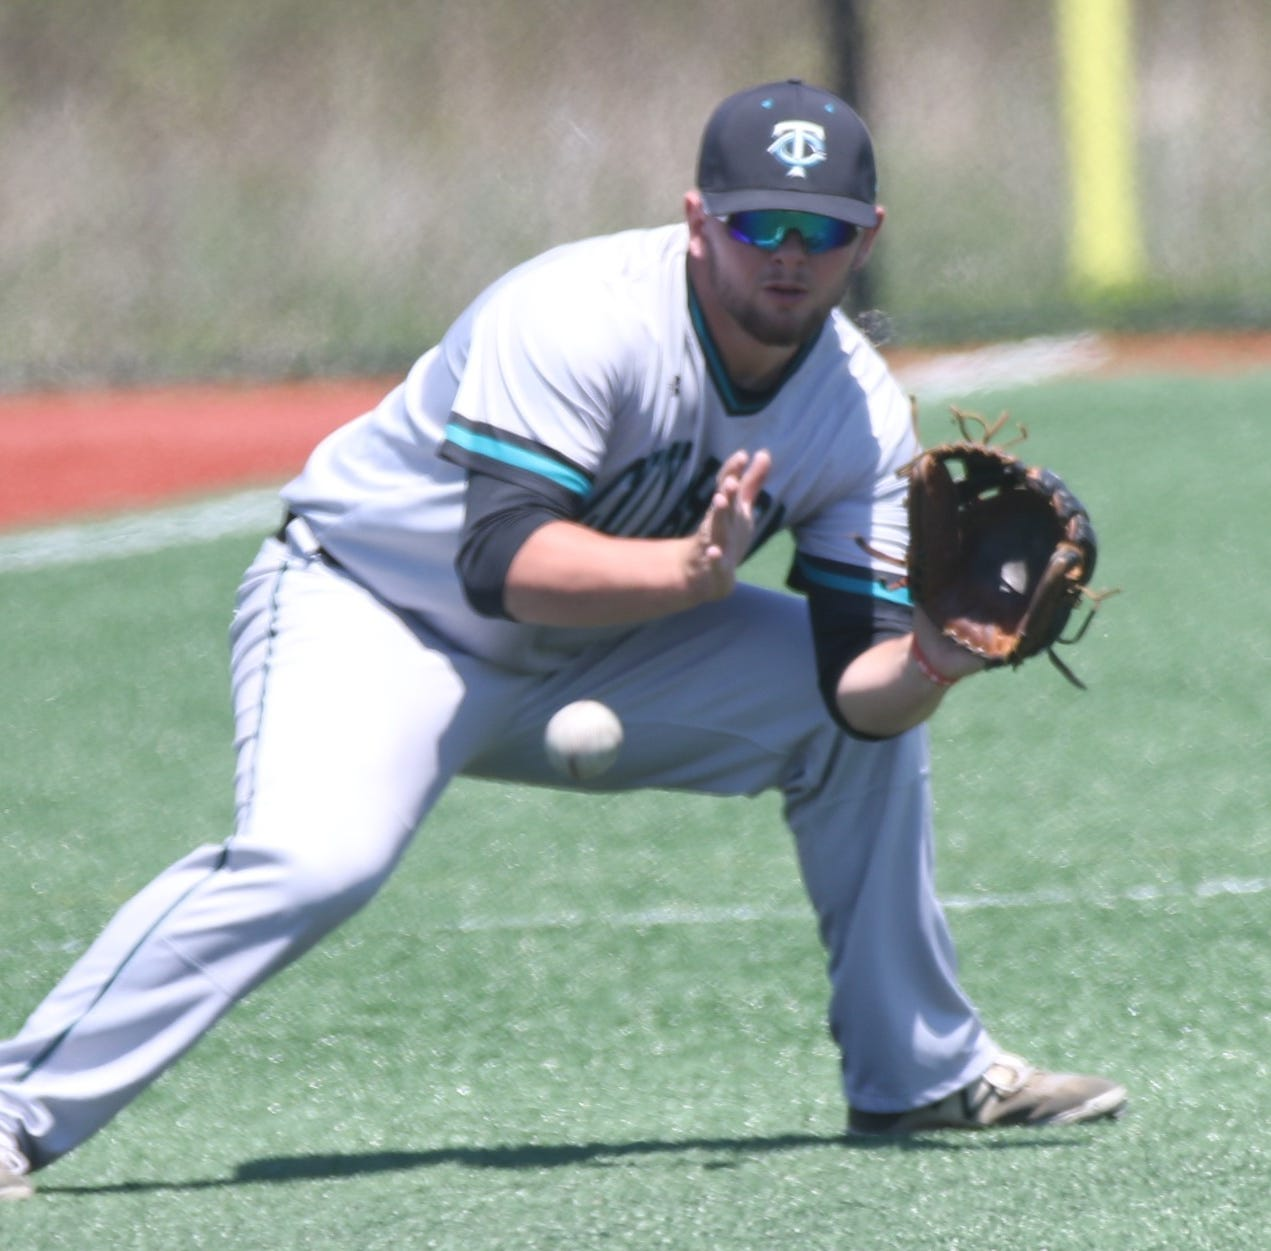 Dream chasing: Plymouth grad Seth Bailey vows to play Division I college baseball